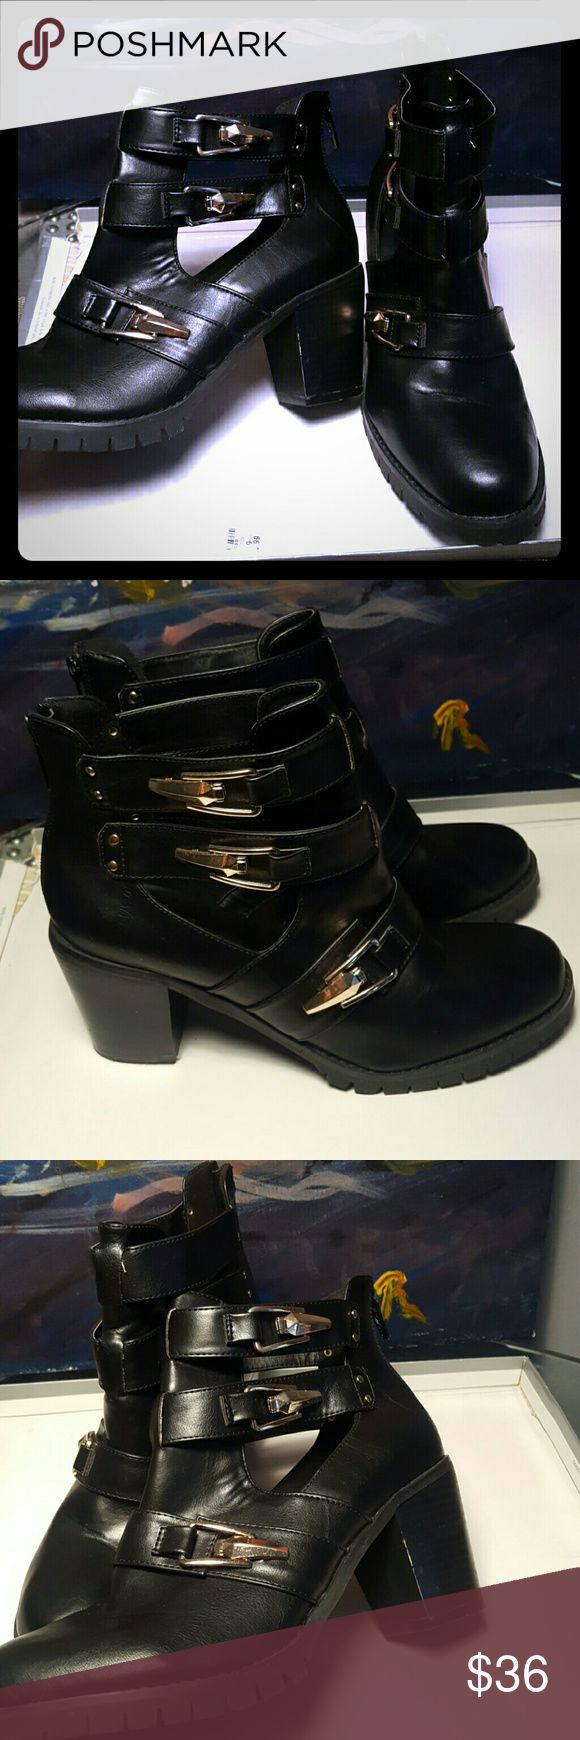 Black moto boot with gold buckles never worn sz 10 Never worn moto boot with ankle cut out and gold buckles sz 10 Wanted Shoes Combat & Moto Boots